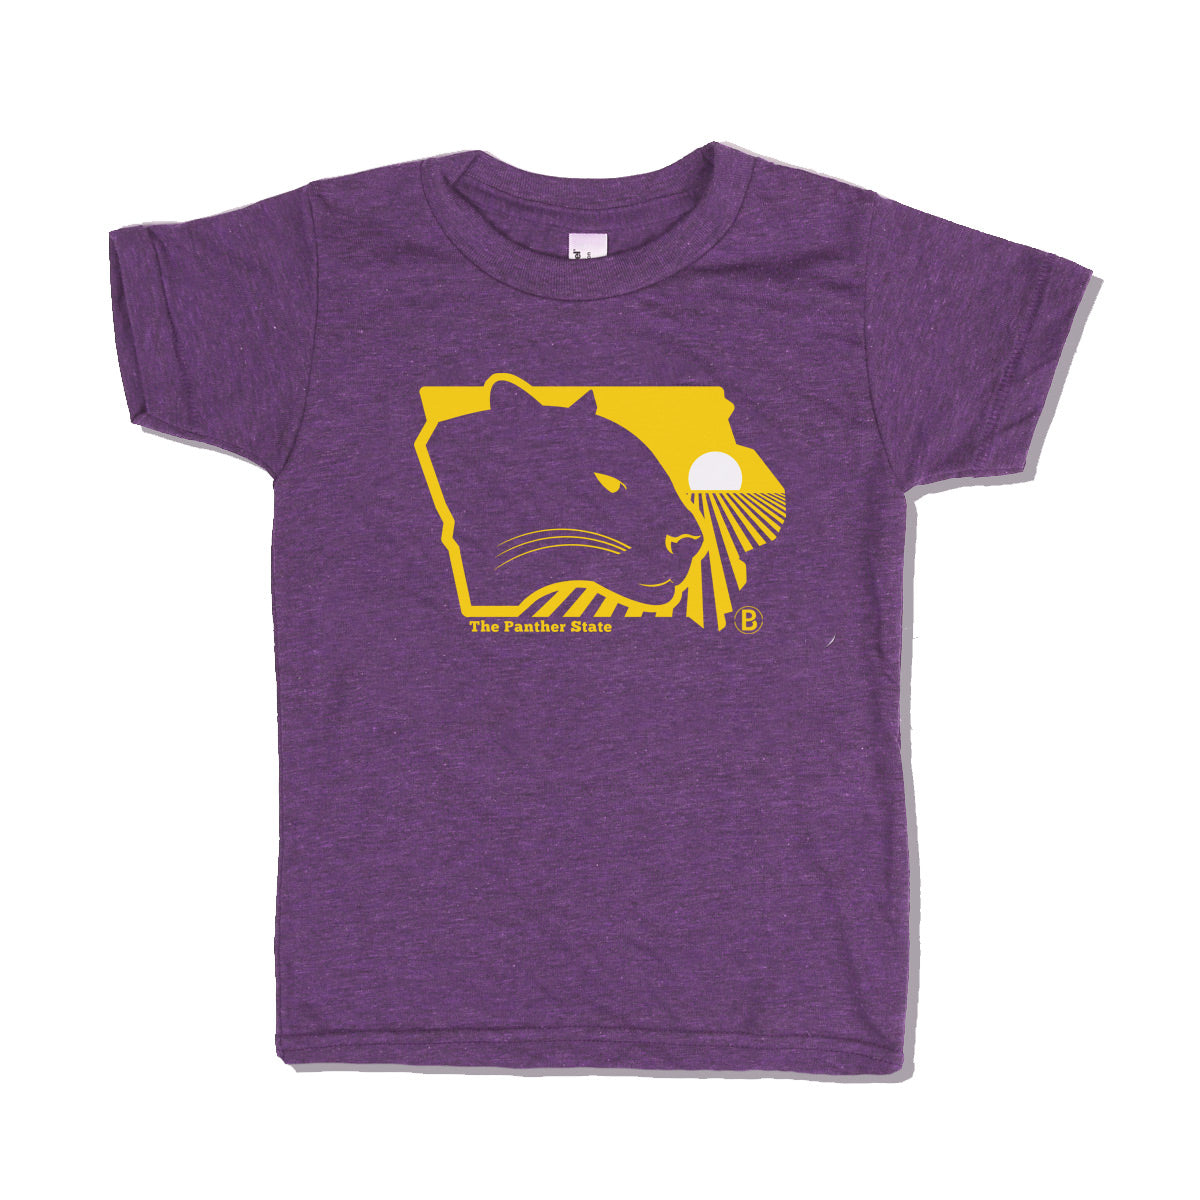 The Panther State Kids T-Shirt